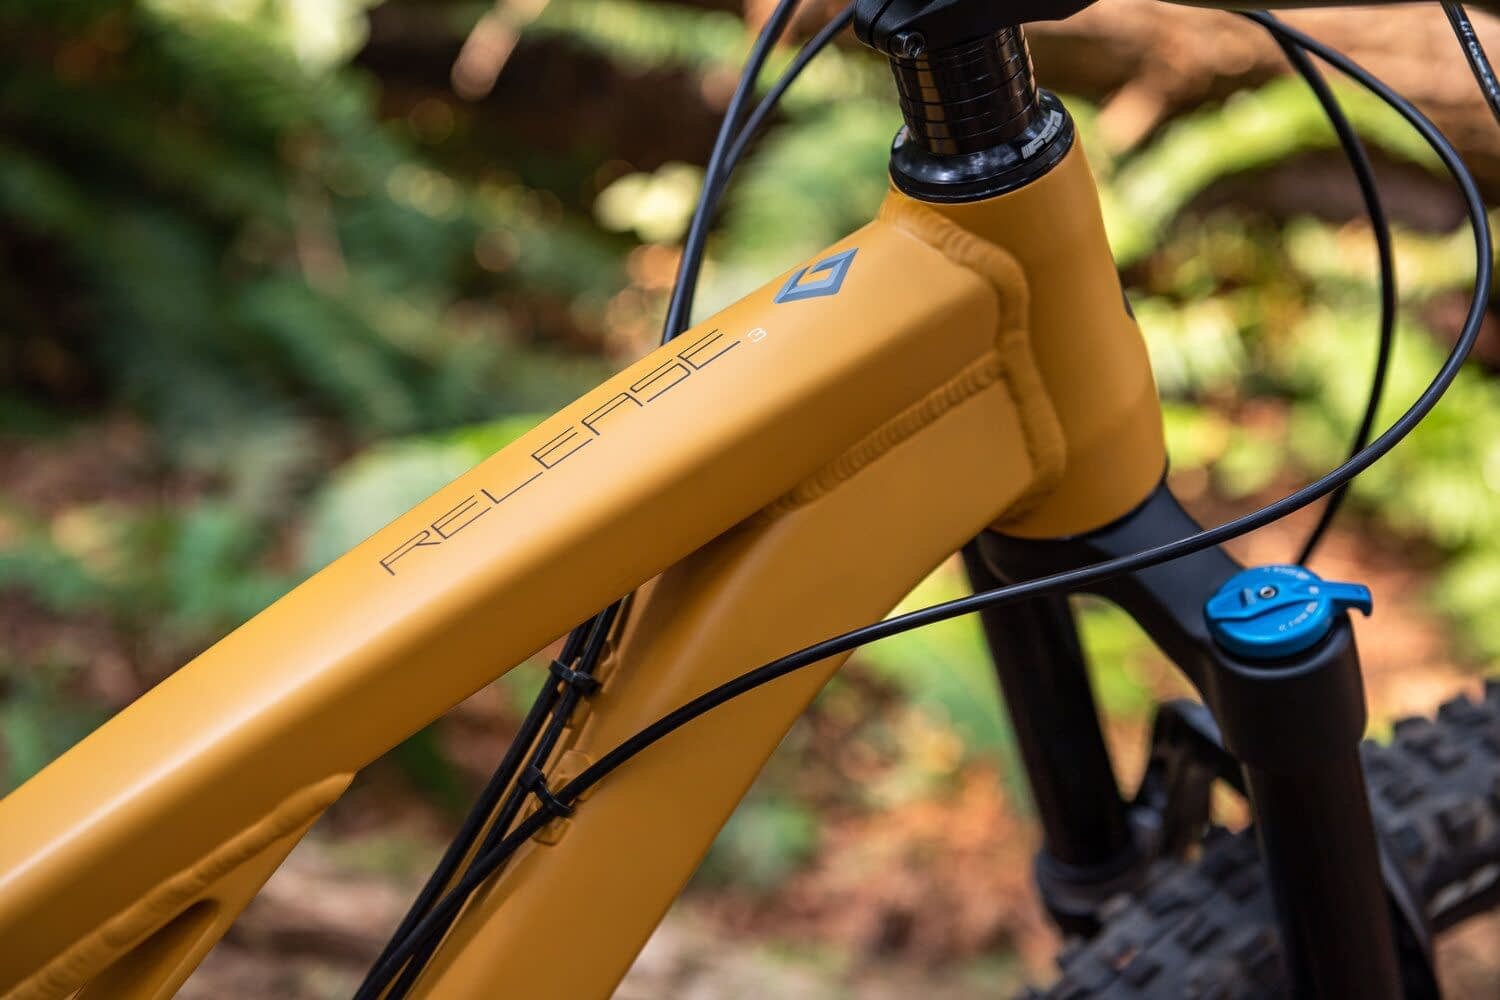 a close up of a yellow mountain bicycle